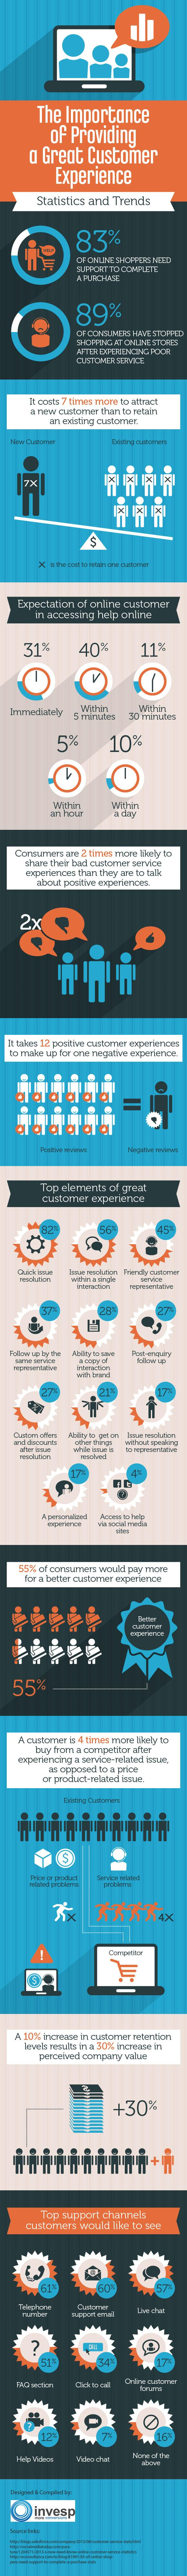 The Benefits of Maintaining a Great Customer Experience [INFOGRAPHIC]